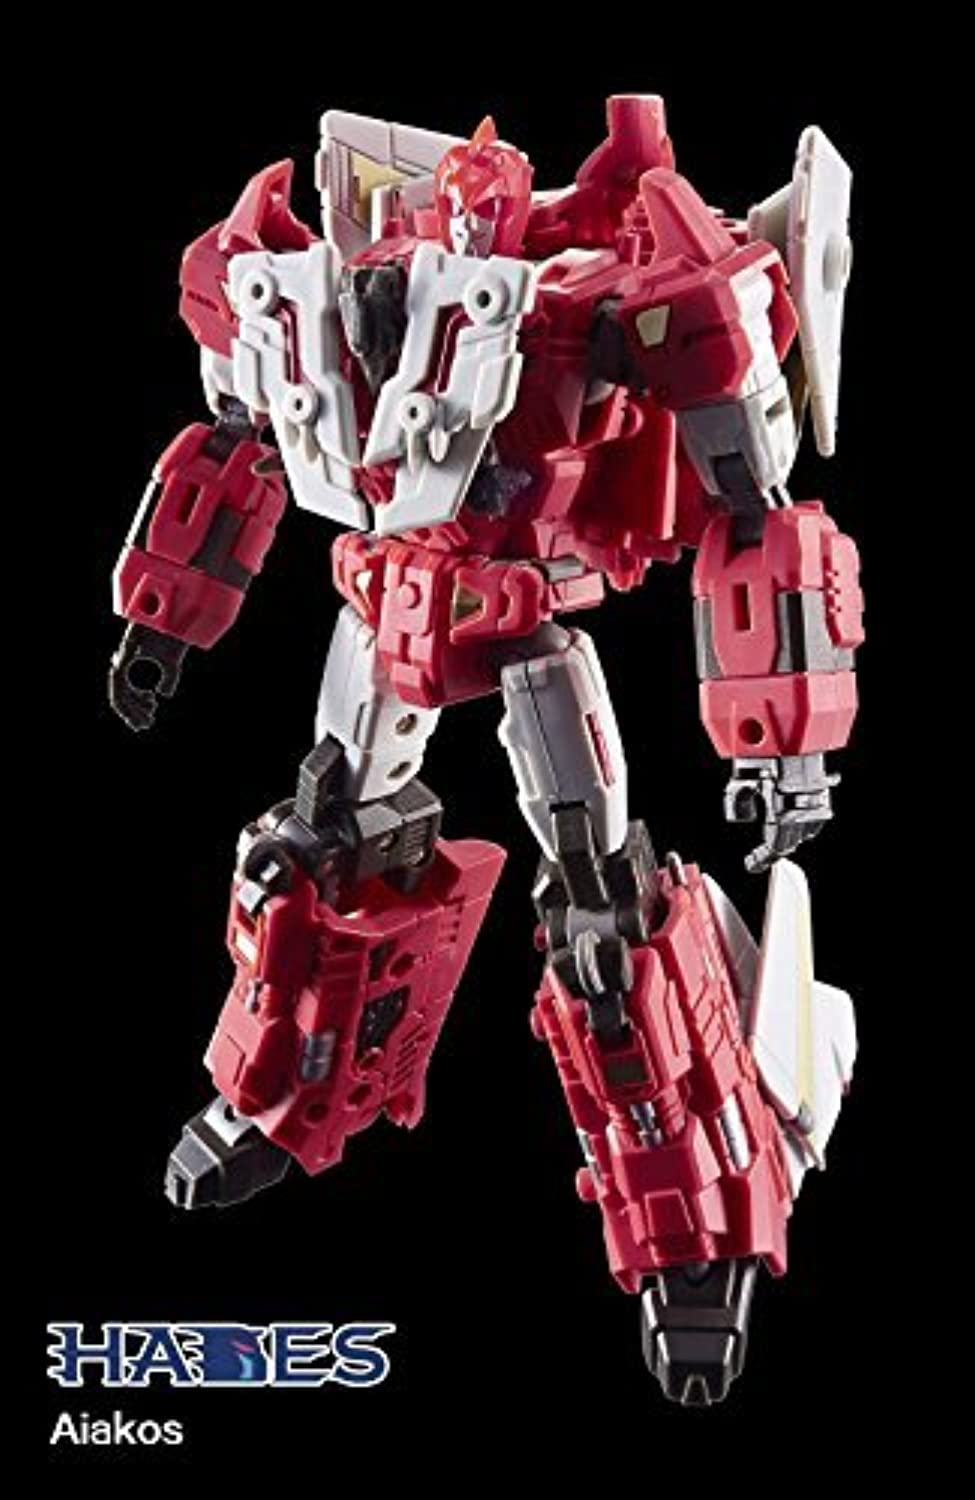 STERLING Transformers H-05 Hades Aiakos Liokaise Figure New